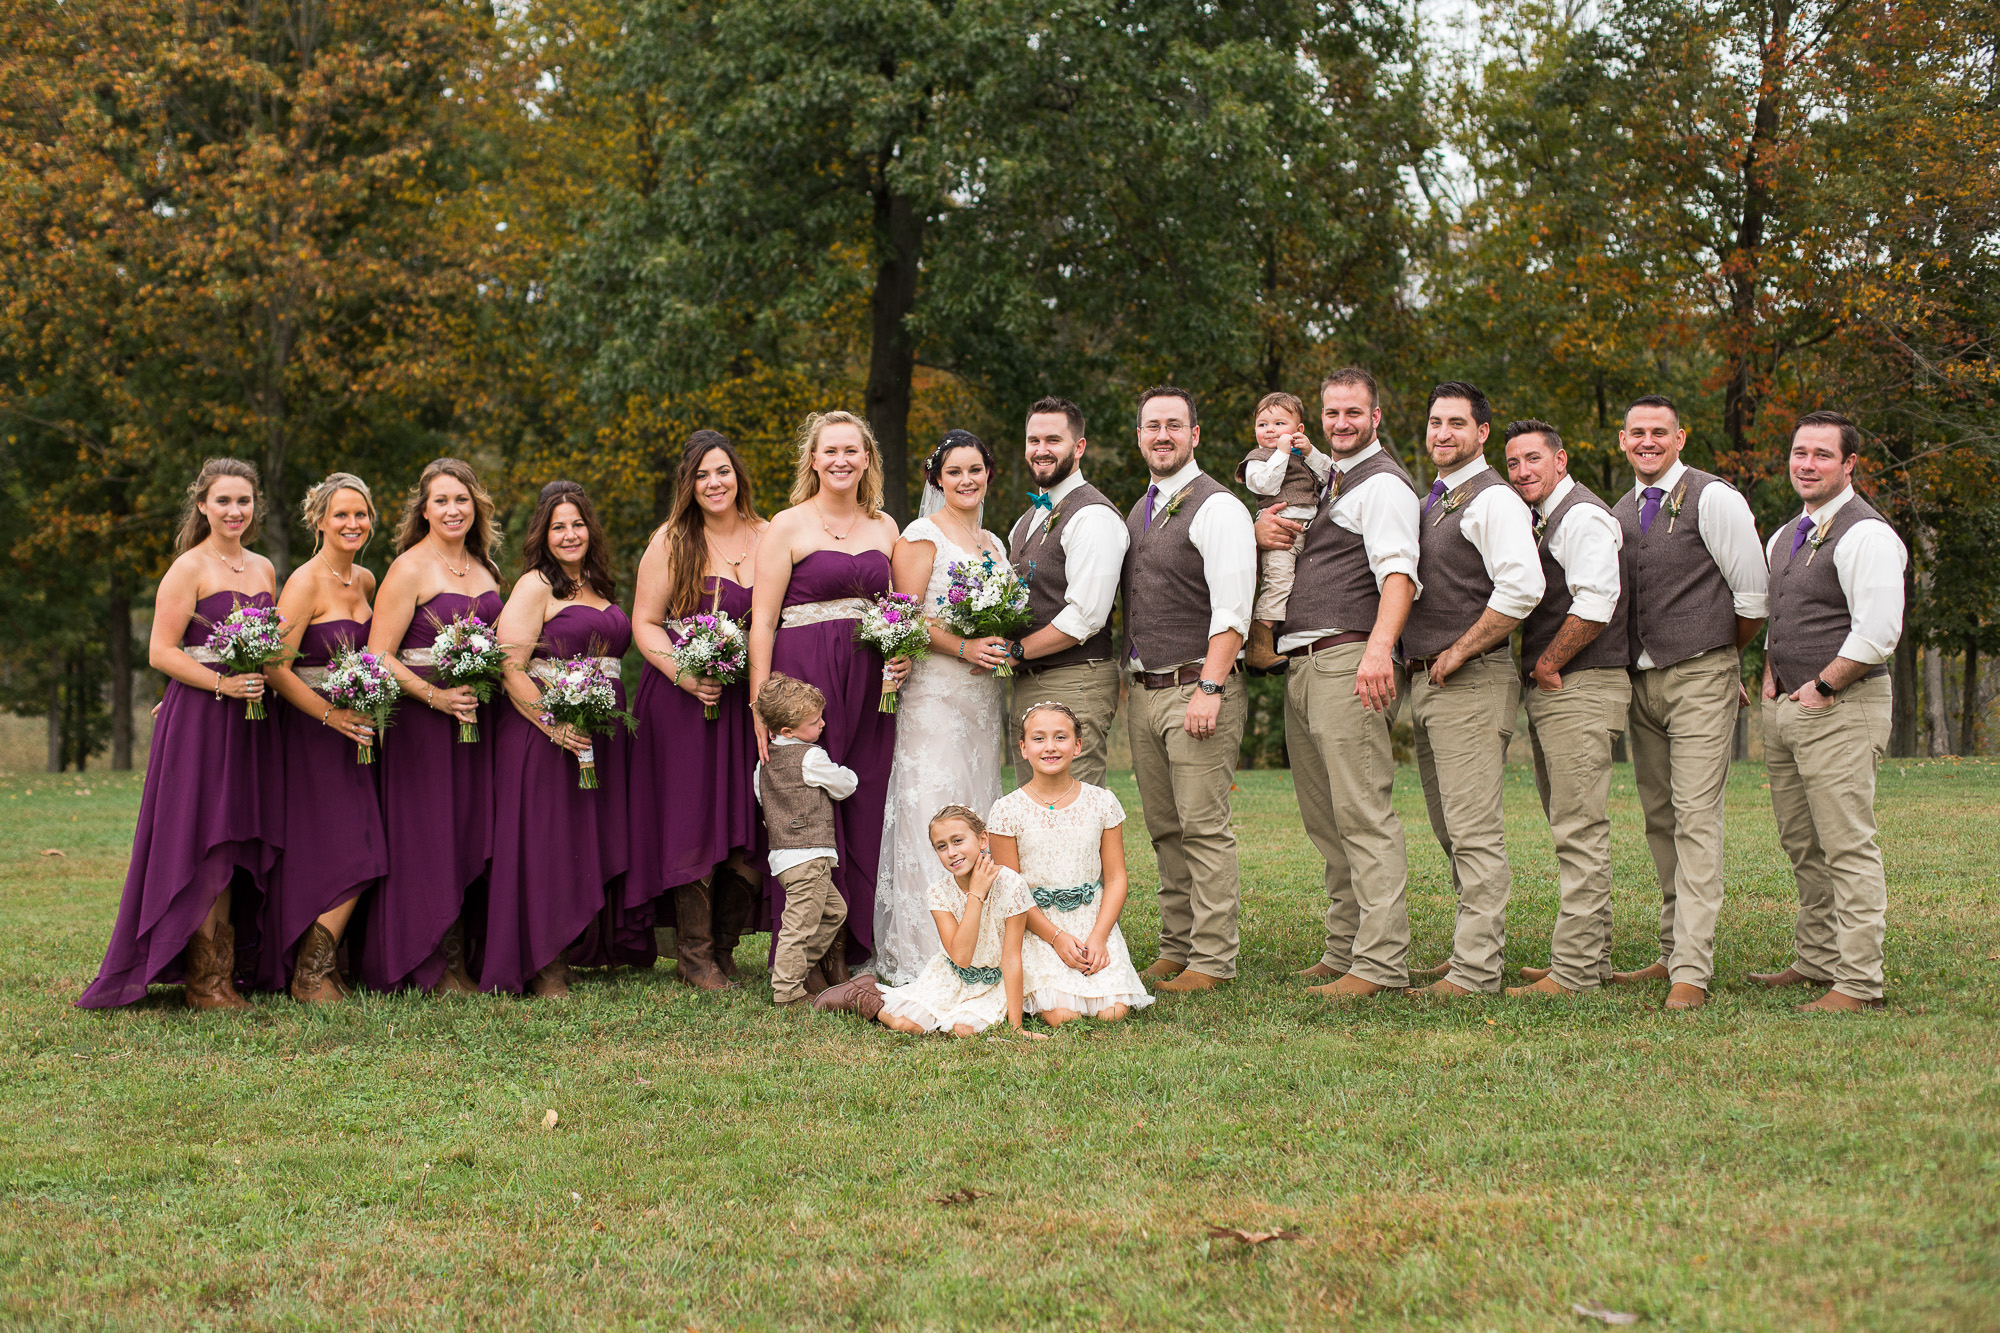 wedding party photo at Candlelight Farms Inn